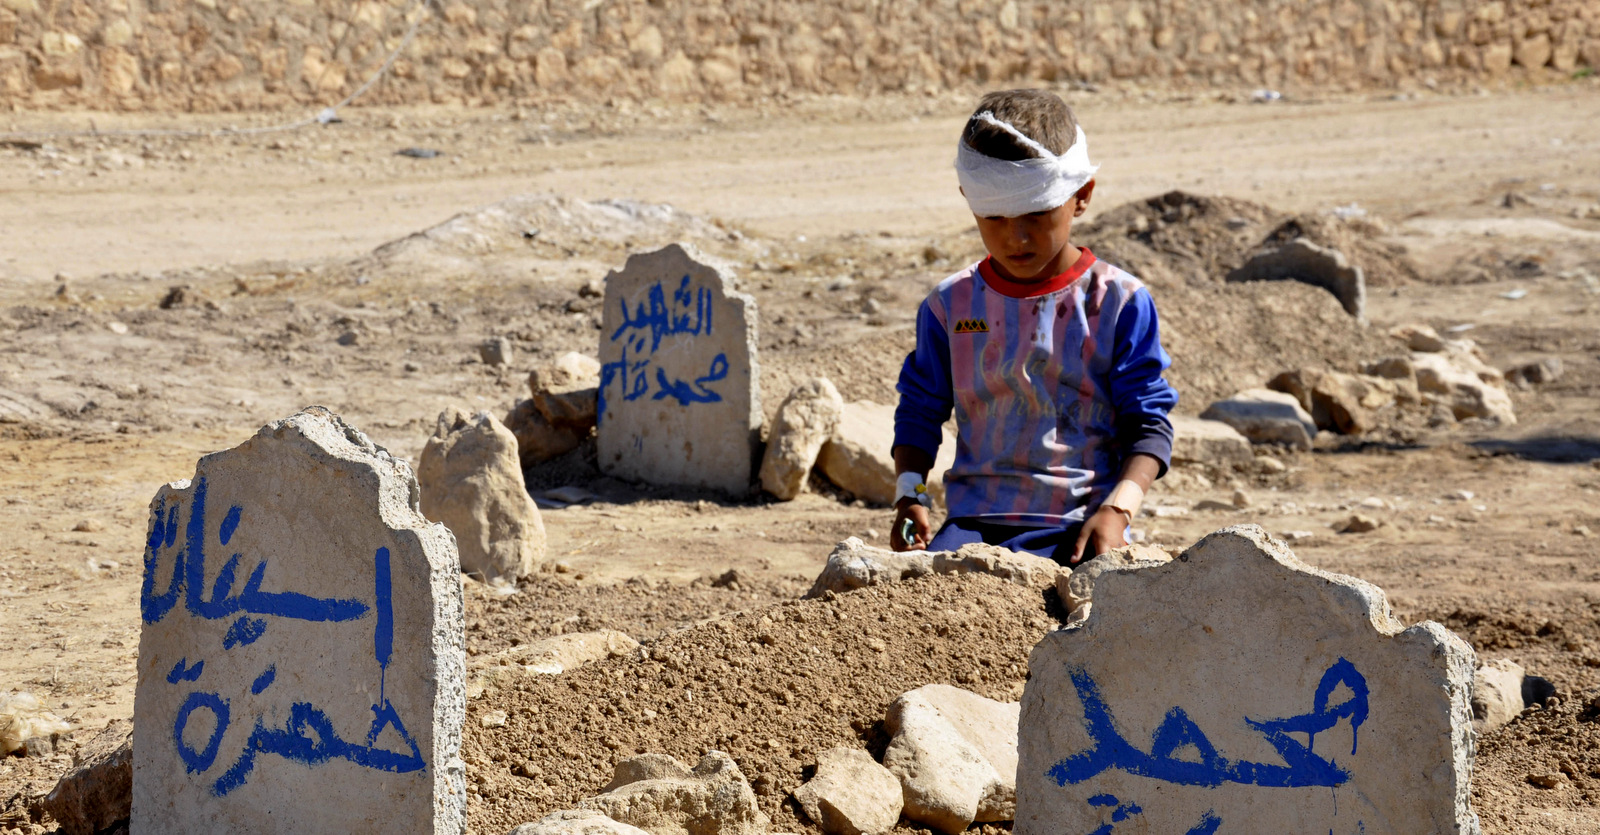 15 Years On, the Staggering Death Toll in Iraq Keeps Climbing